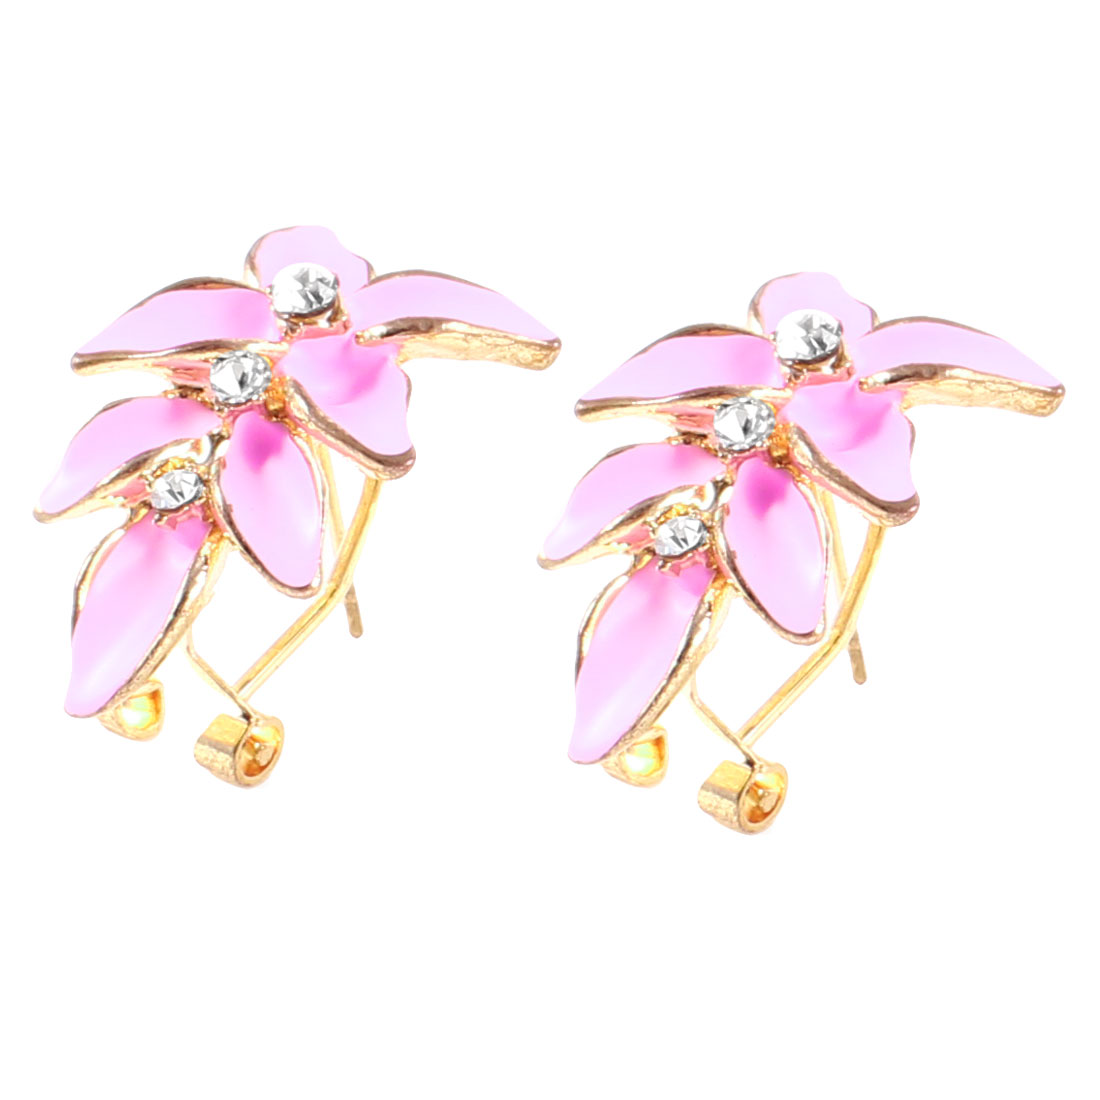 Ladies Rhinestone Gold Tone Pink Leaf Accent French Clip Earrings Pair